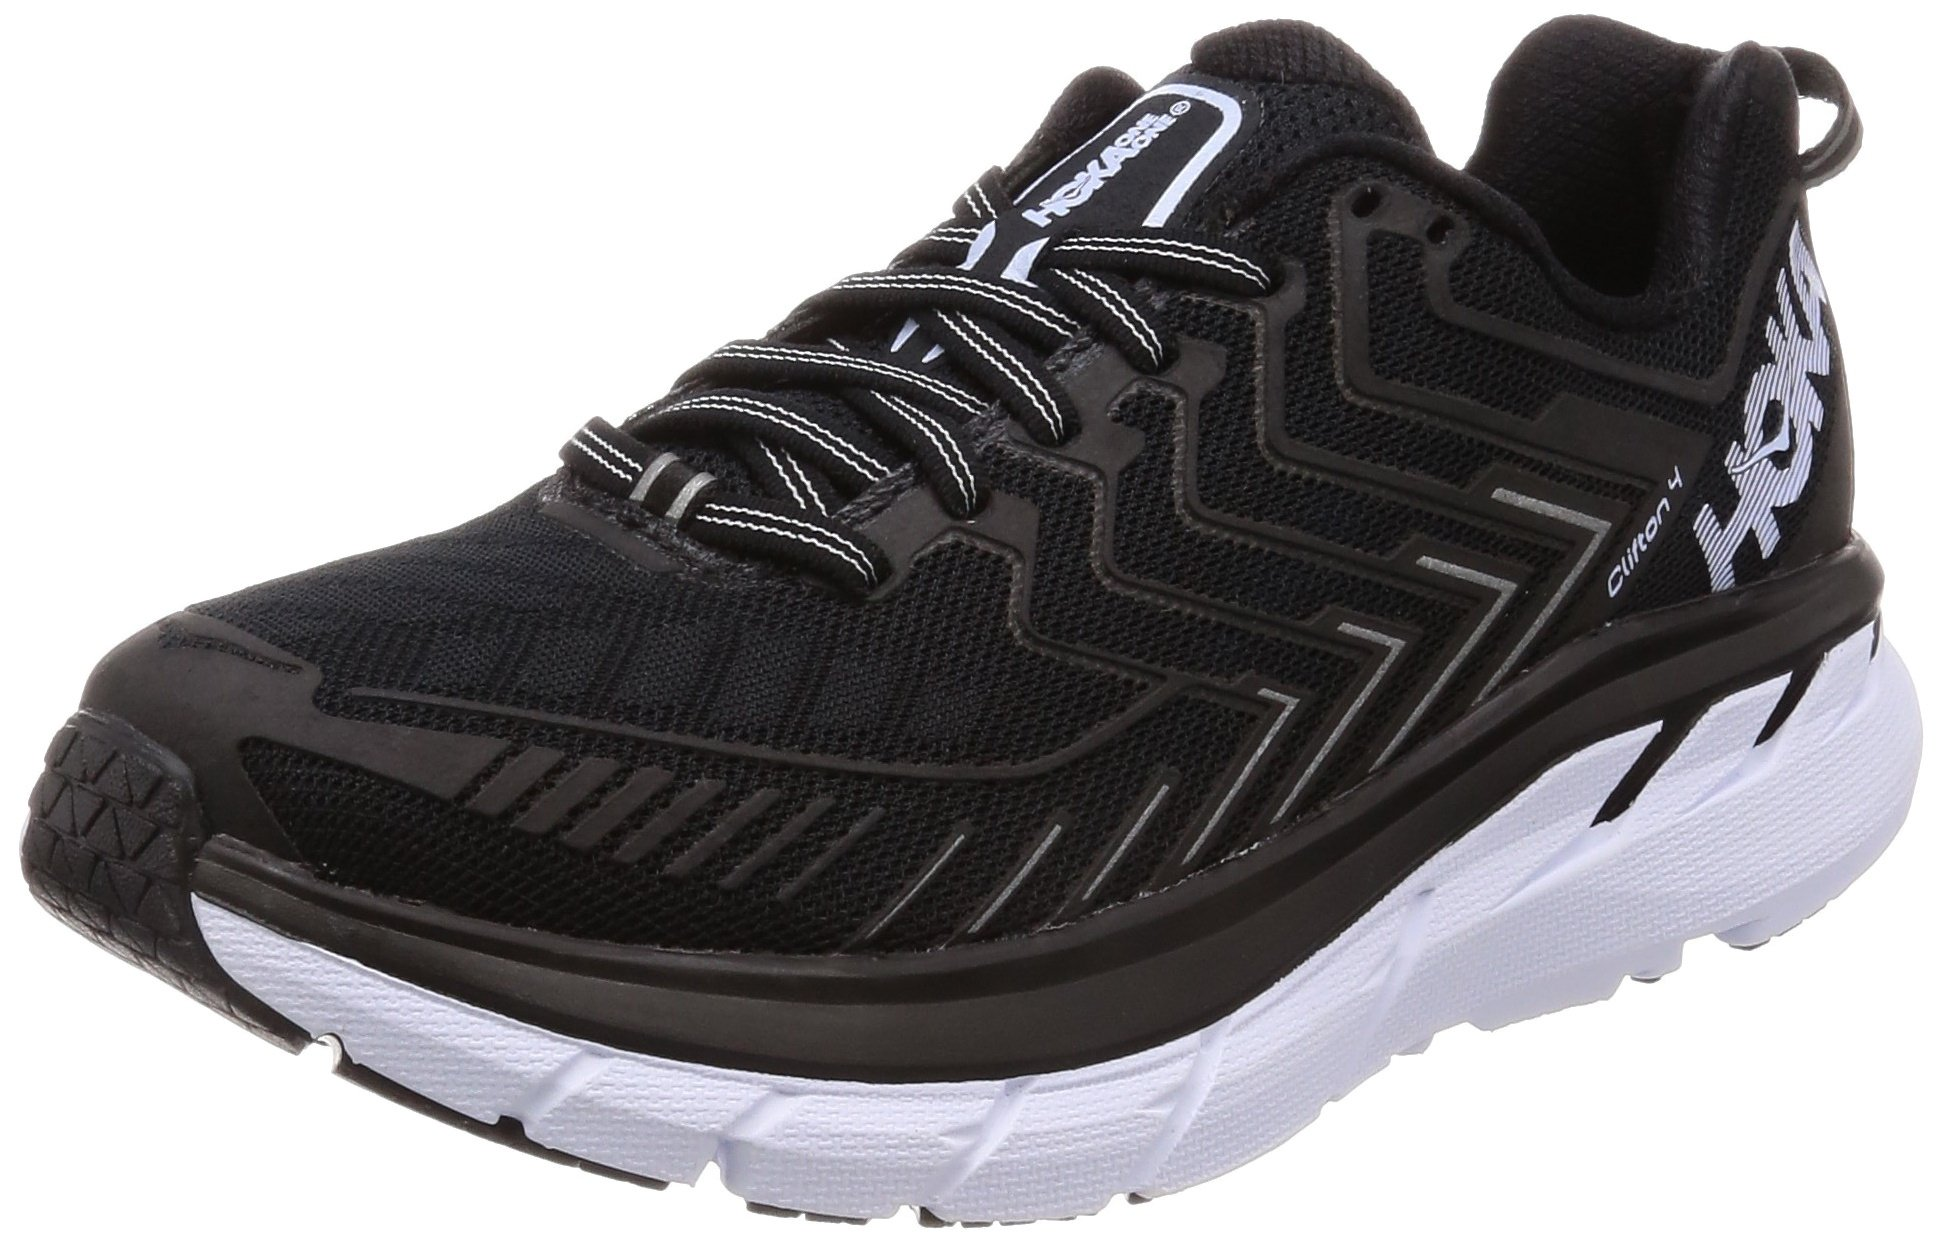 HOKA ONE ONE Clifton 4 Running Shoes - Women's Black/White 9